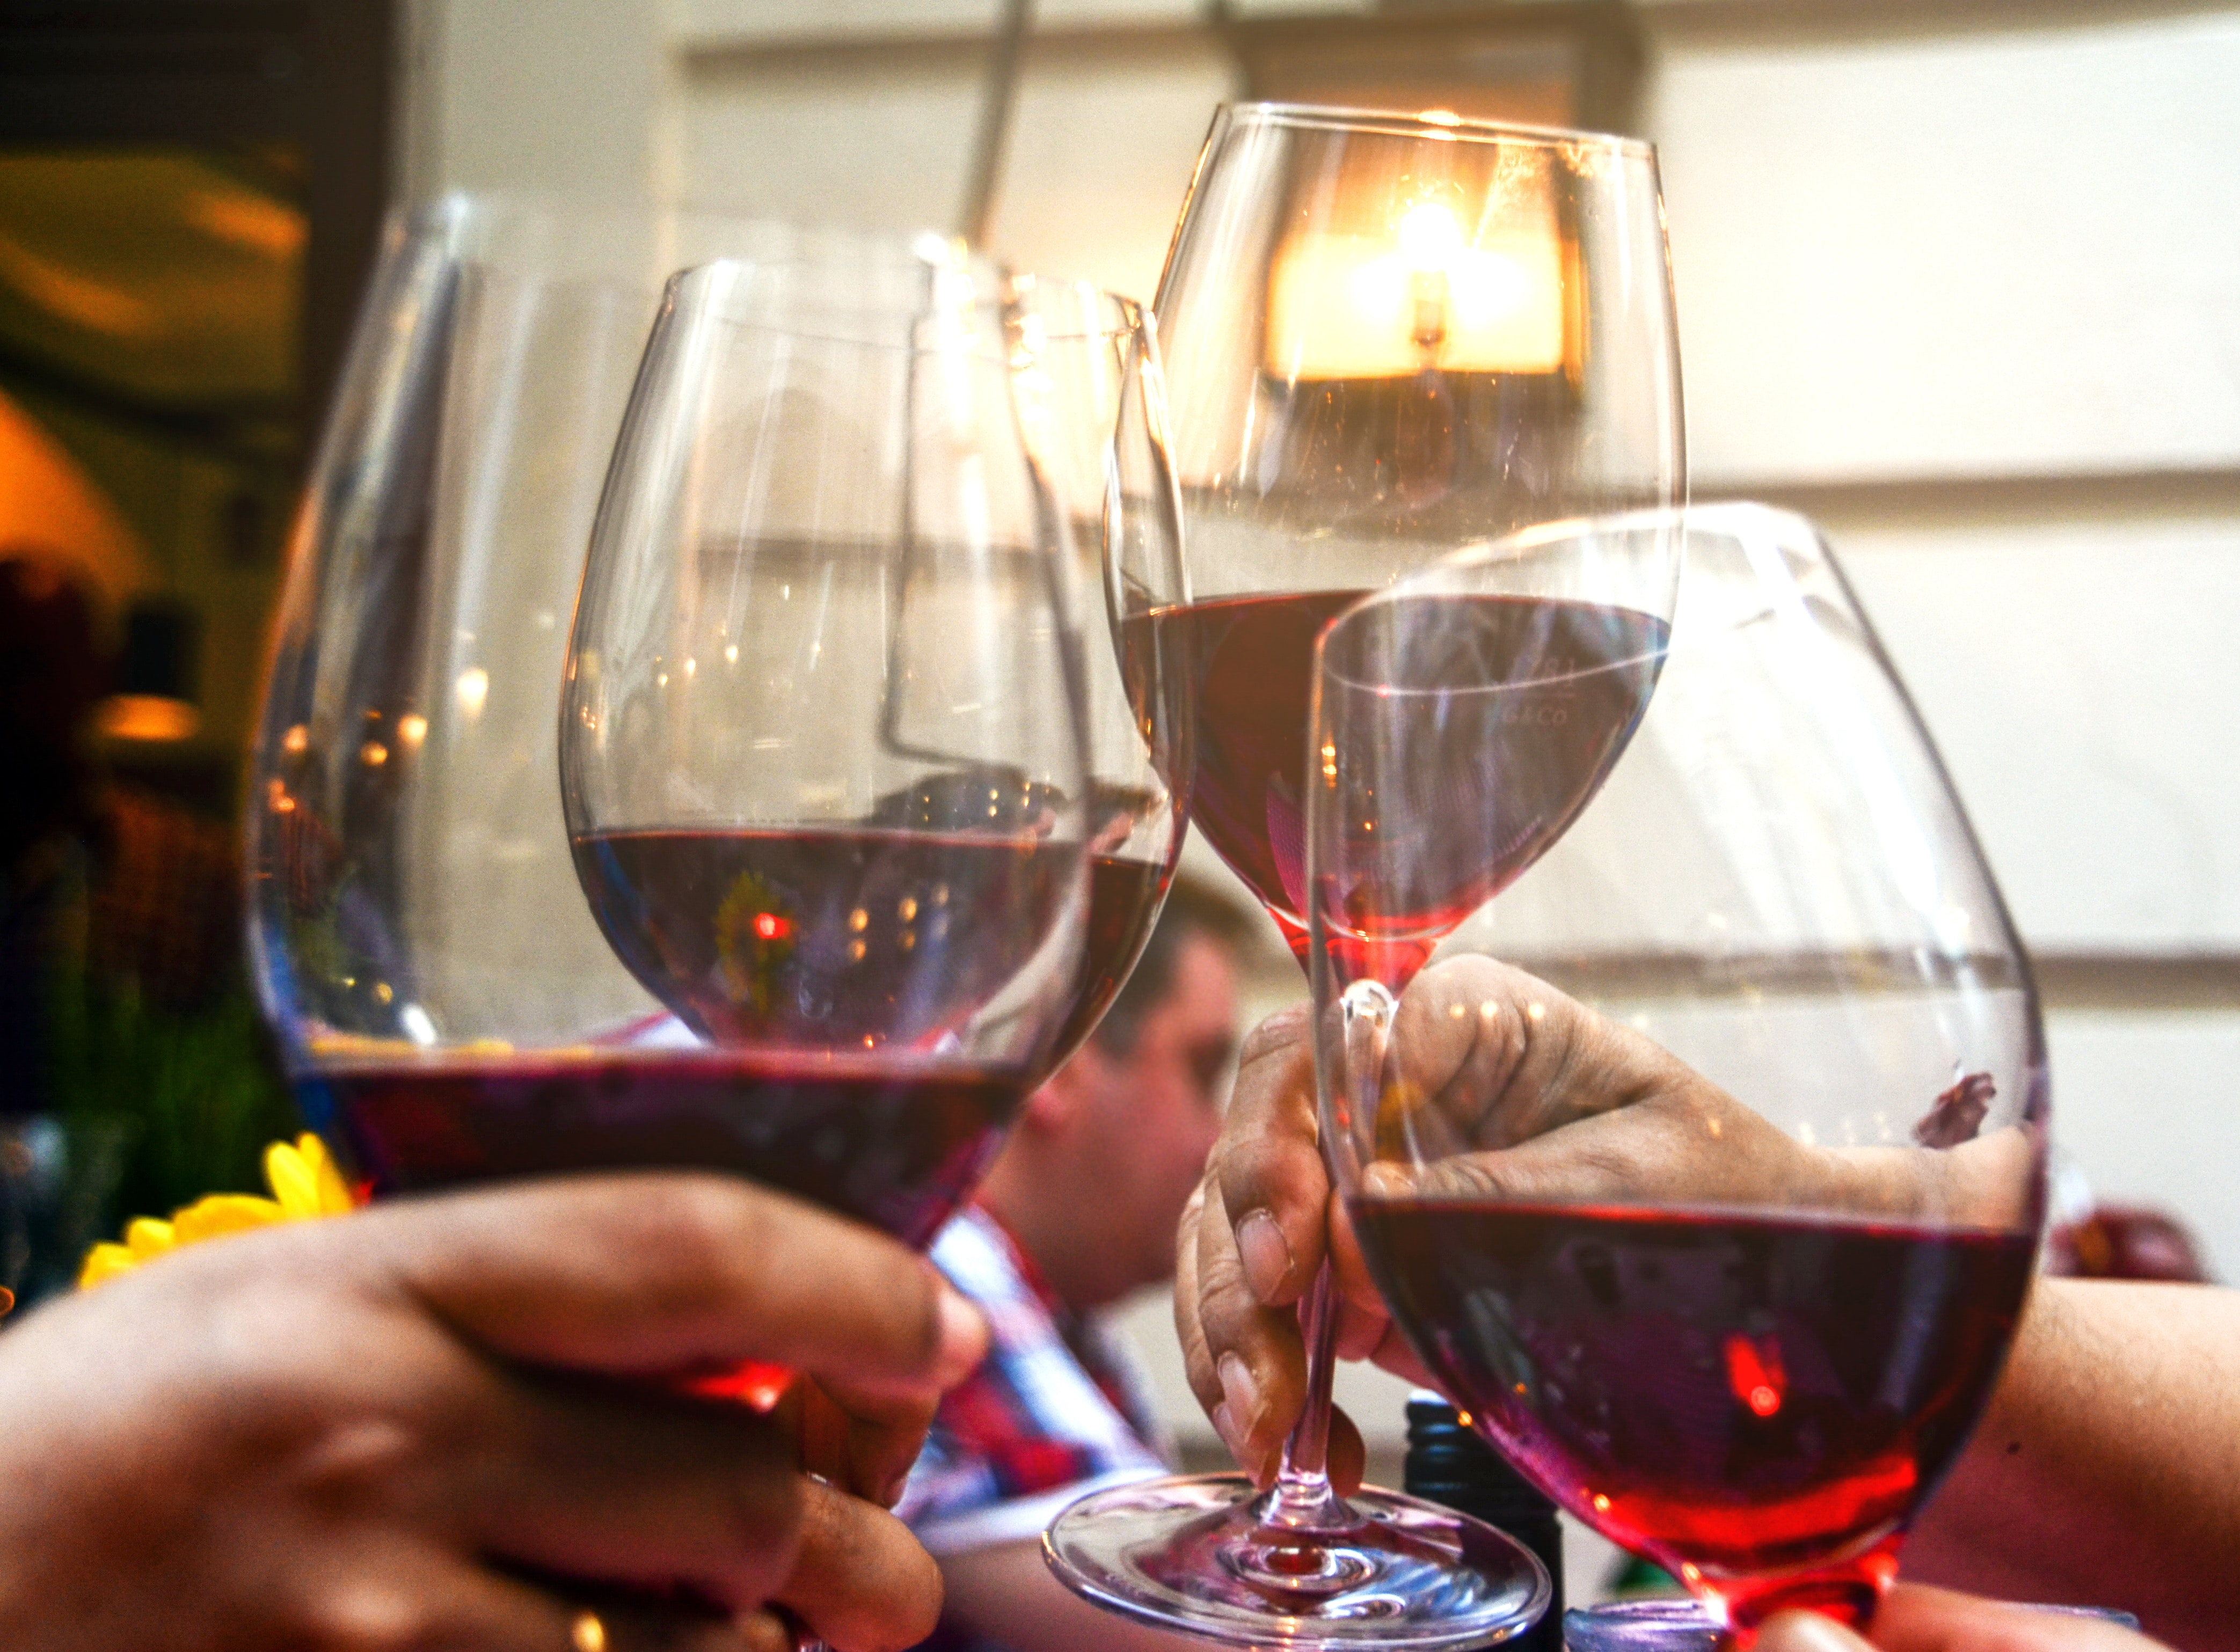 Four Wine Glasses With Red Wine, Alcohol, Liquid, Wine, Taste, HQ Photo